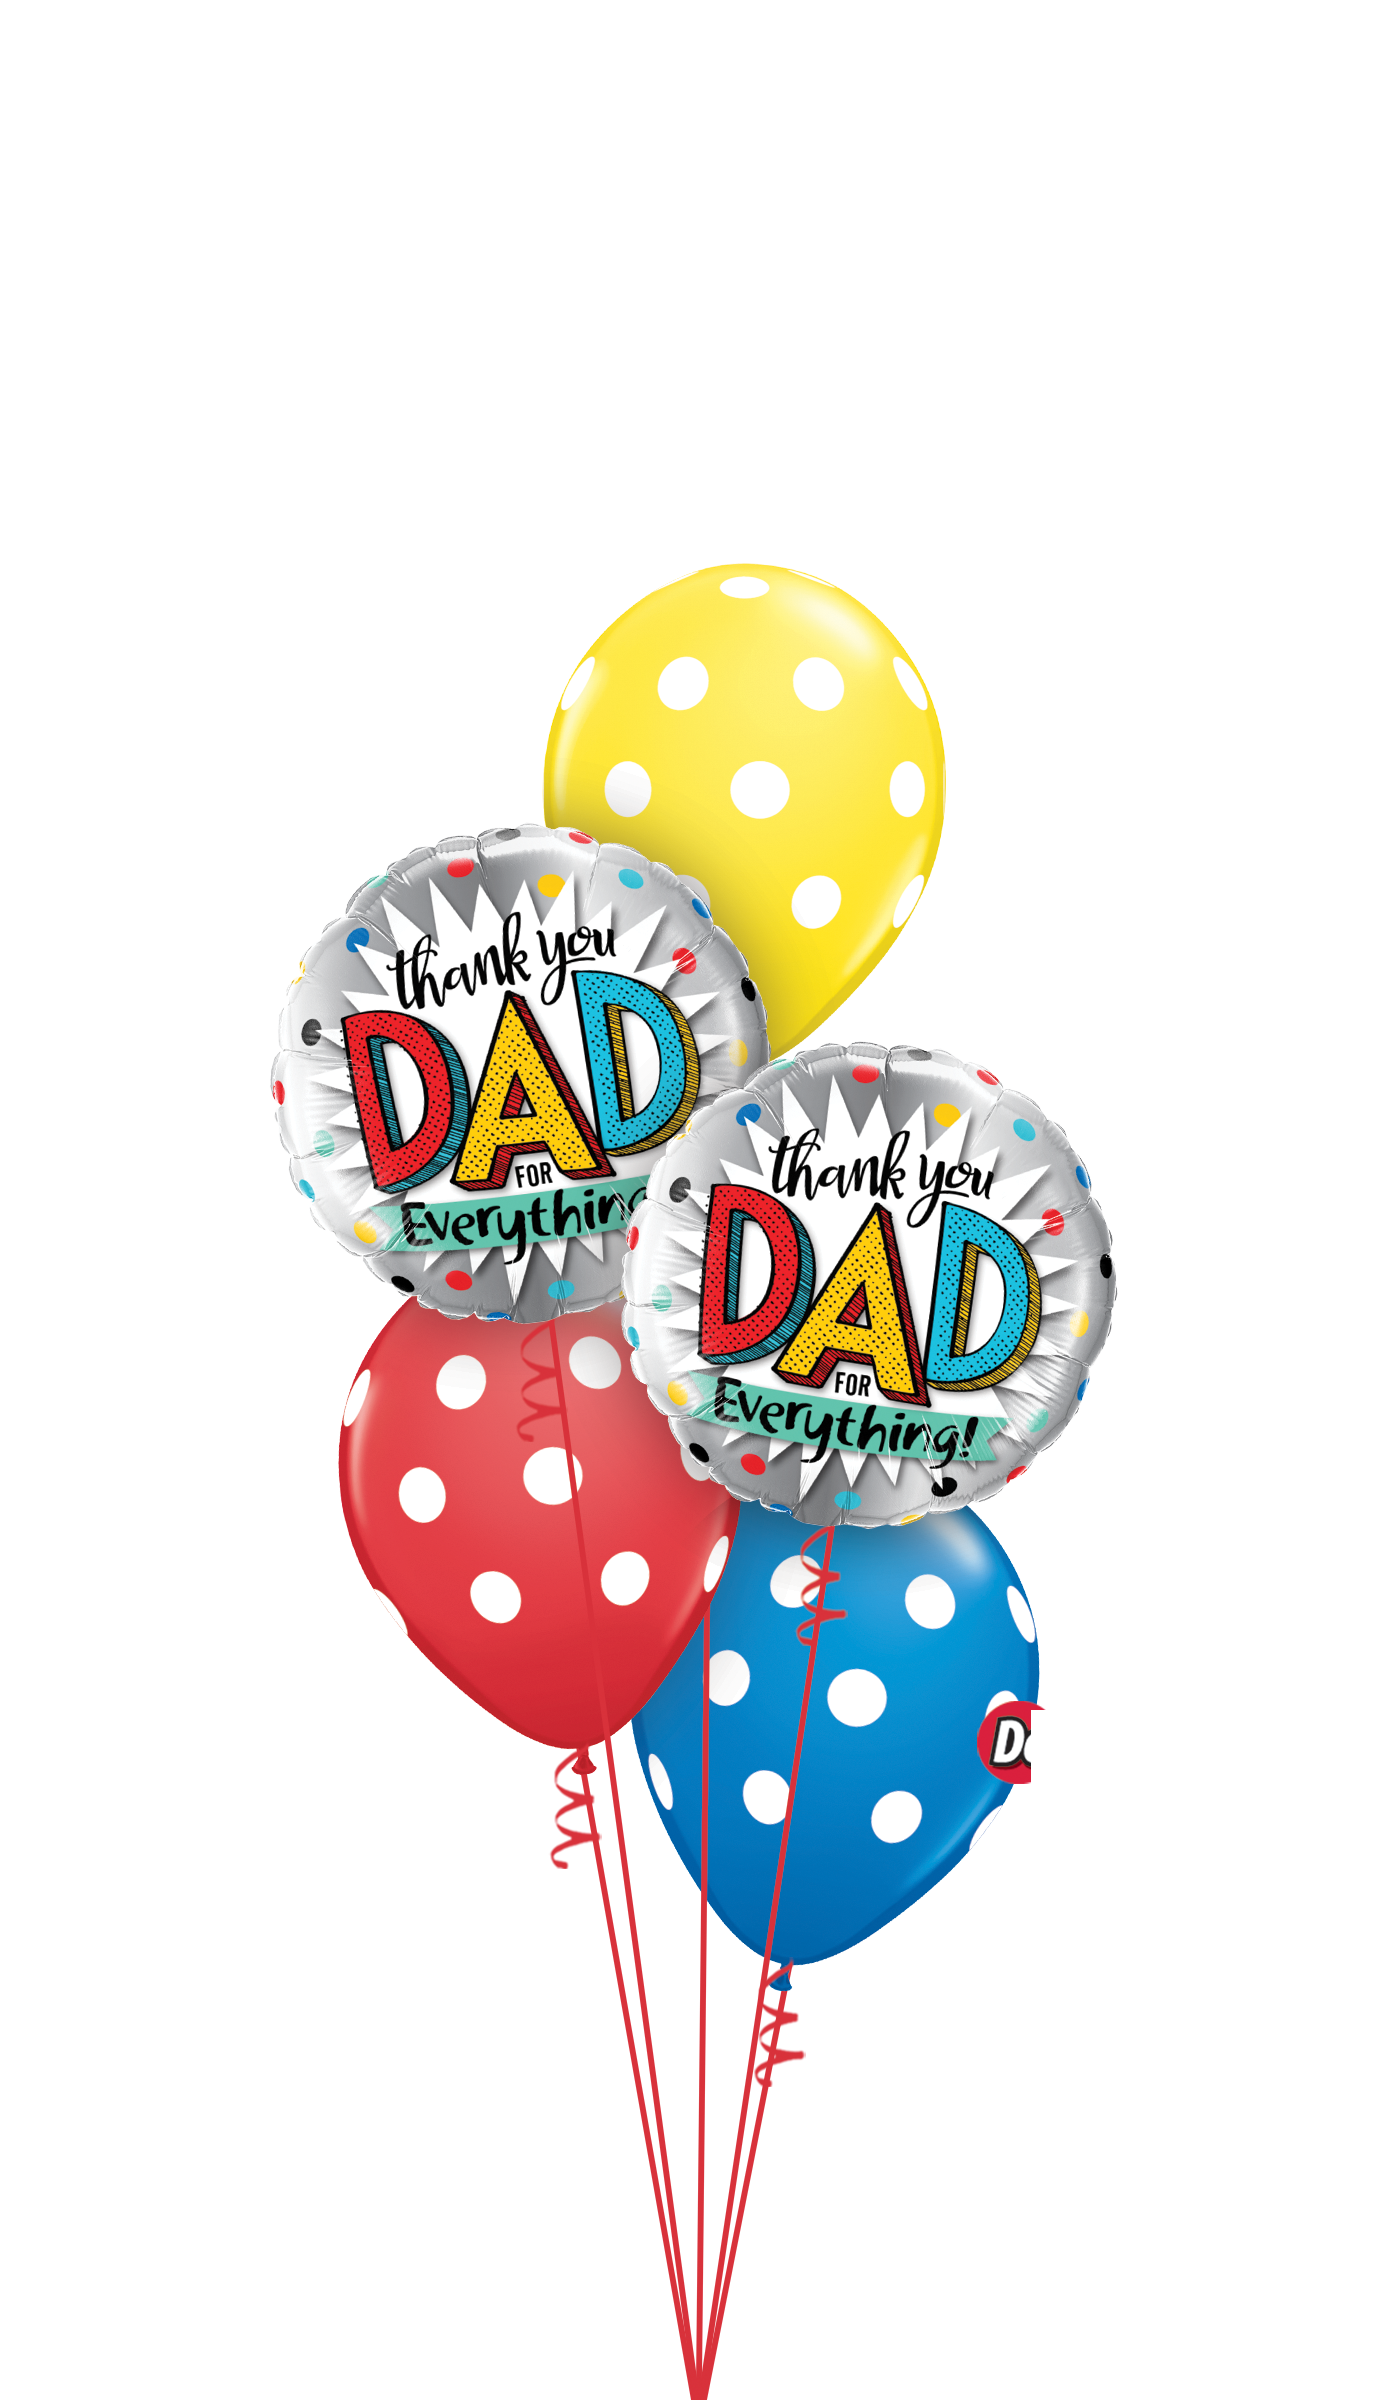 Fathers-day Balloons